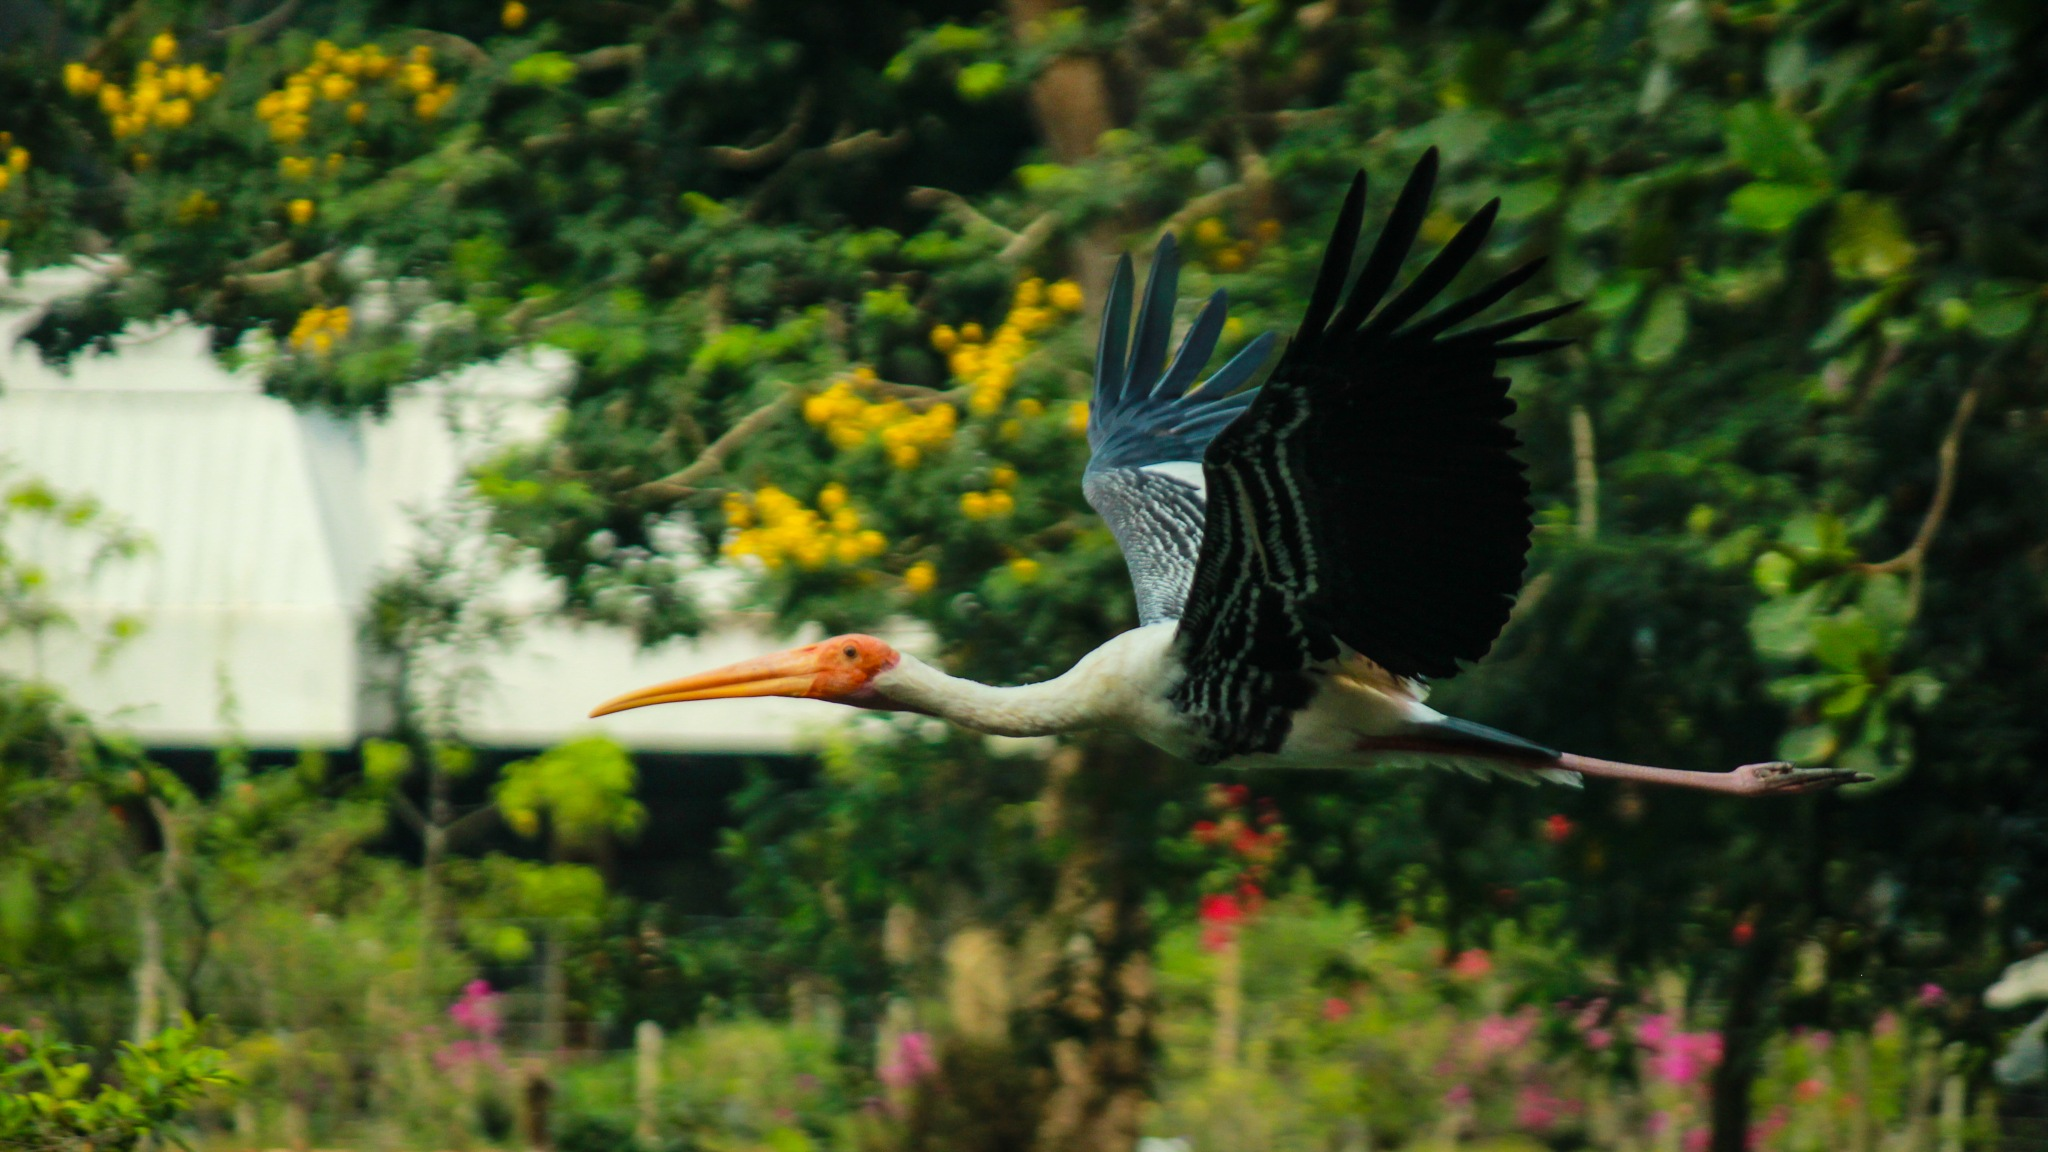 Bird Flying by Avishek karmakar